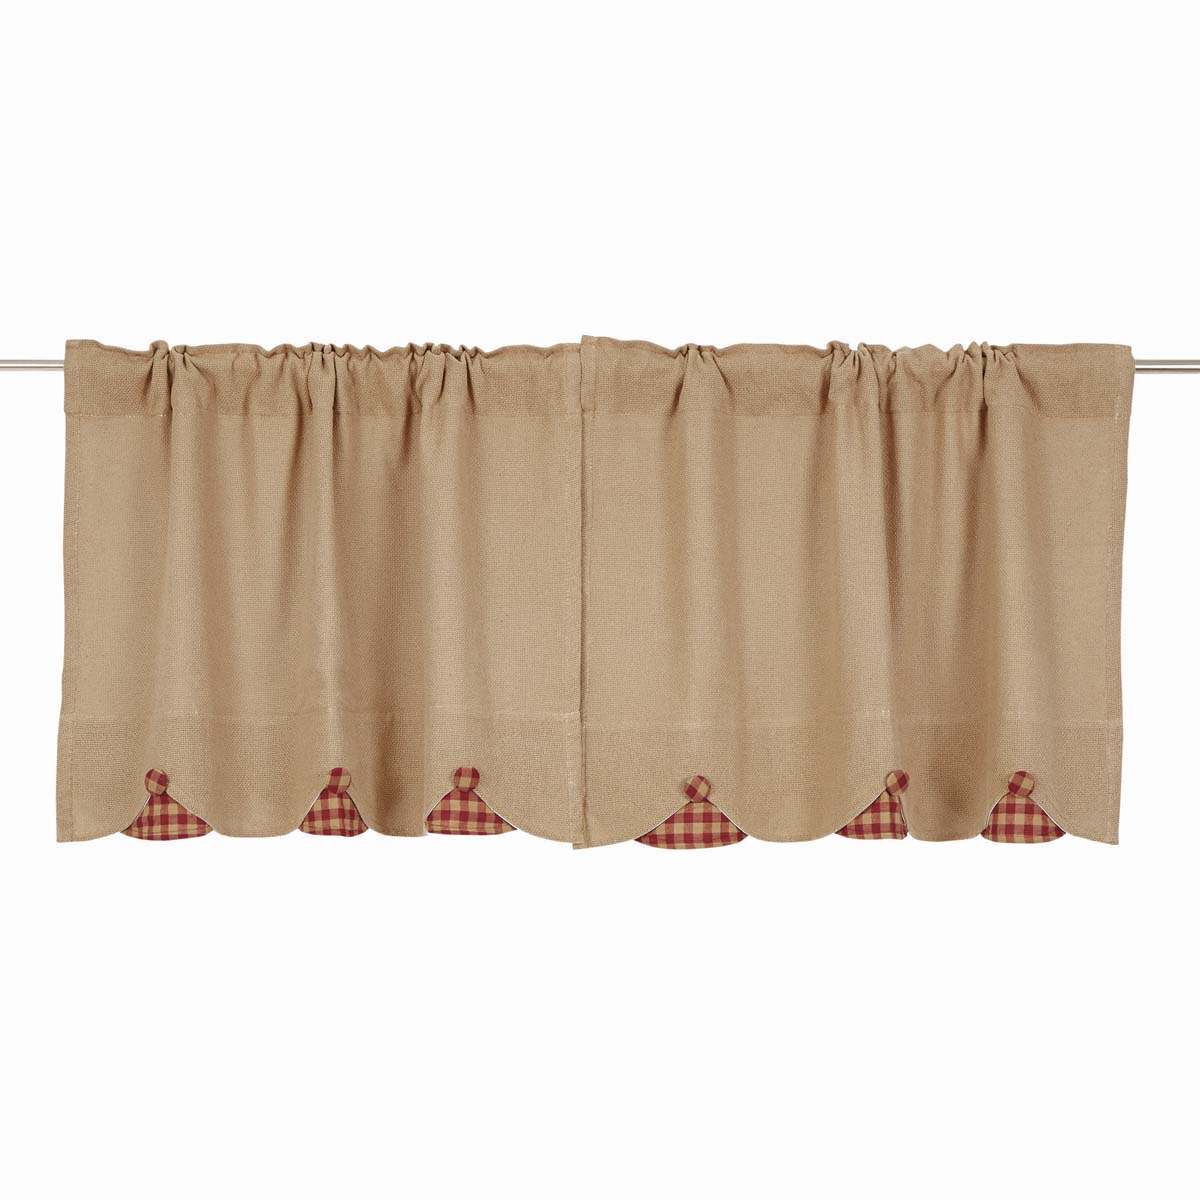 BURLAP NATURAL Tier w/Burgundy Check - Set of 2 - 24x36 - Farmhouse - VHC Brands